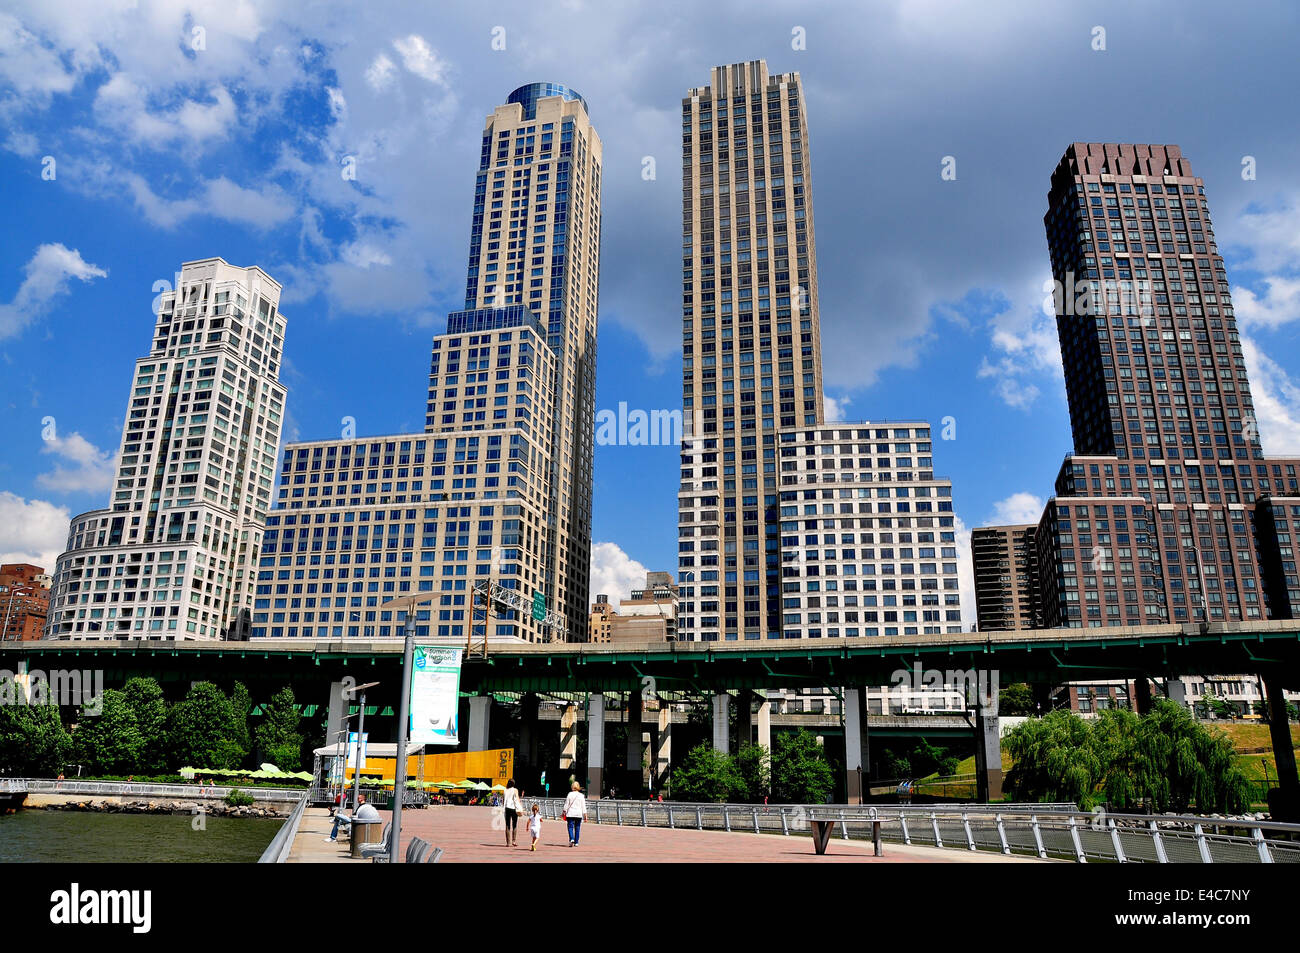 Nyc Modern High Rise Luxury Apartment Towers Many Built By Donald